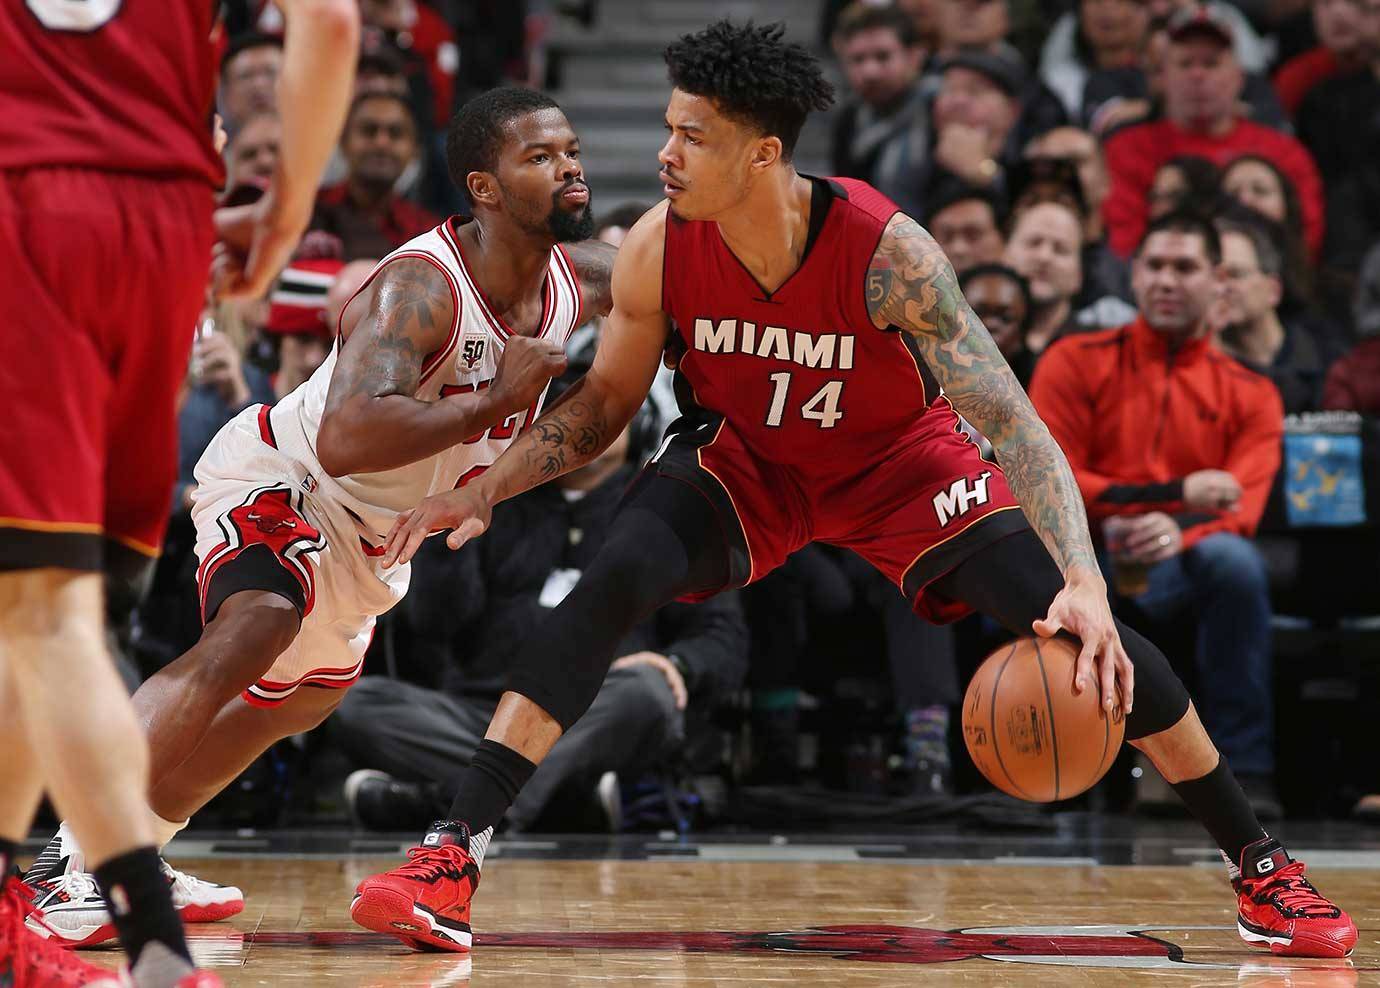 Gerald Green of the Miami Heat defends the ball against the Chicago Bulls at United Center in Chicago.